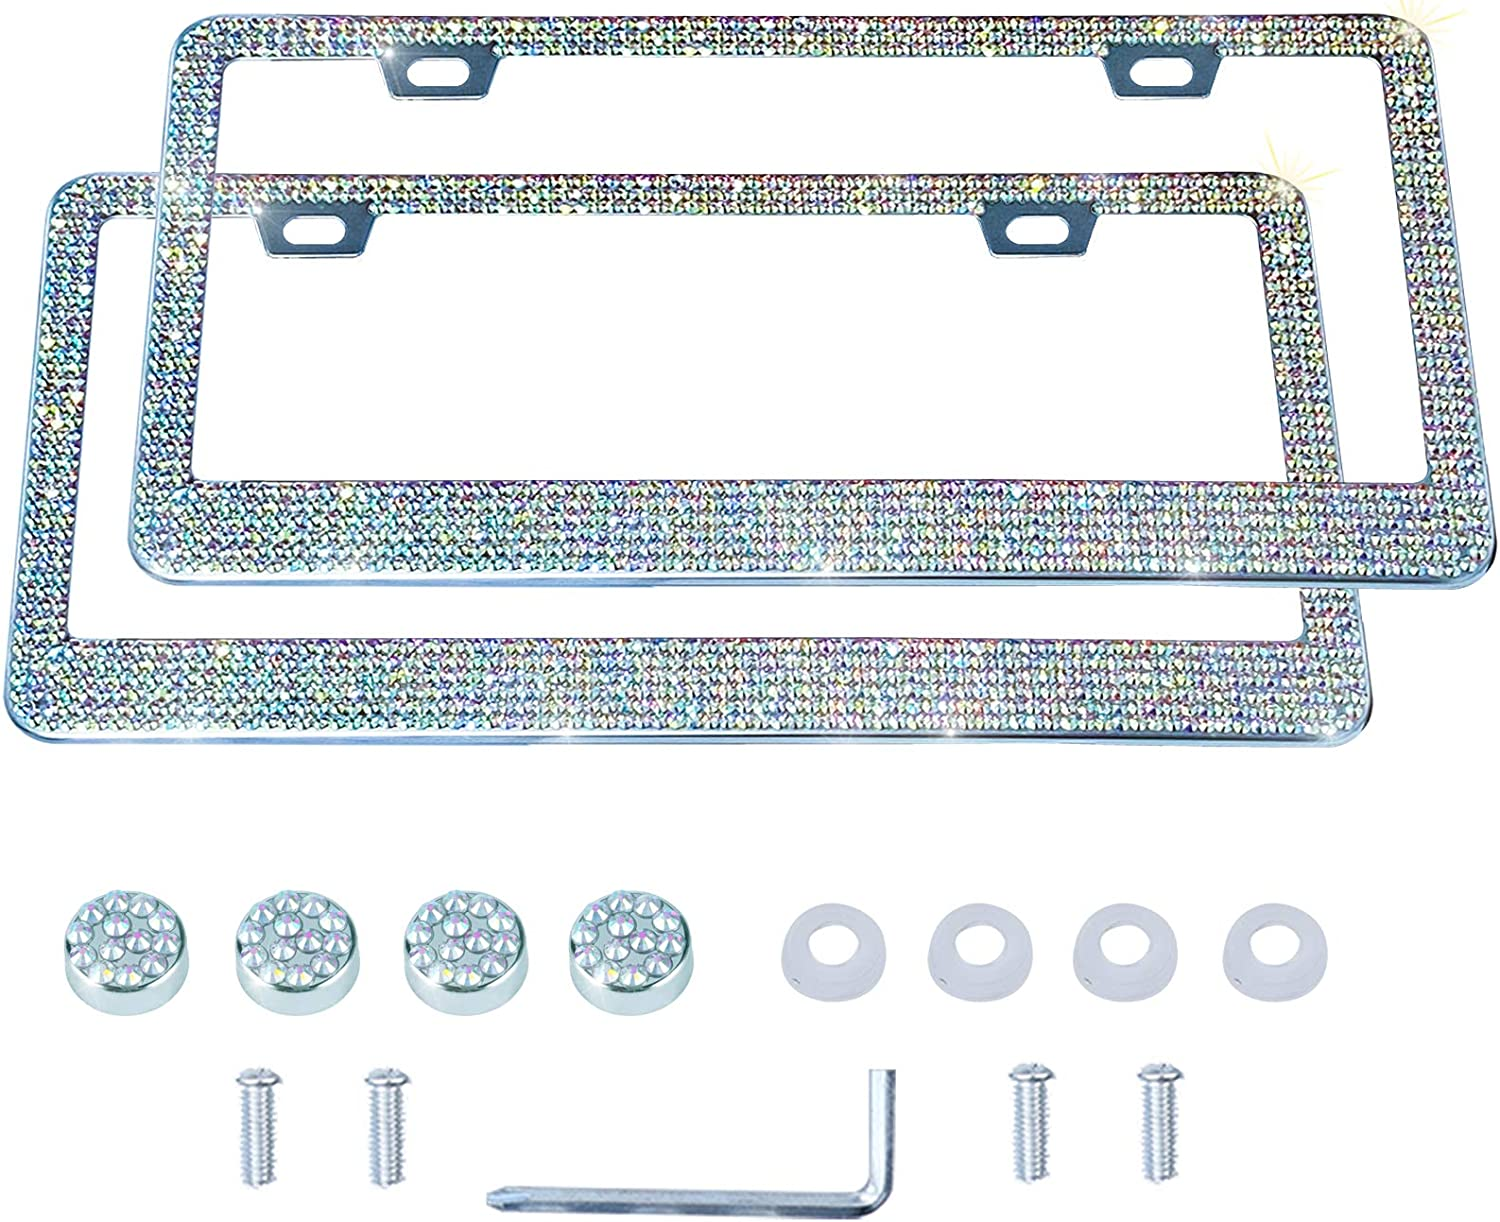 LivTee Luxury Rhinestone License Plate Frame Bling Car Accessories for Women, Funny Glitter Stainless Steel Cover 1000+ Cute Crystal Diamond Licenses Plates Holder with Cap Screws Set(Color)